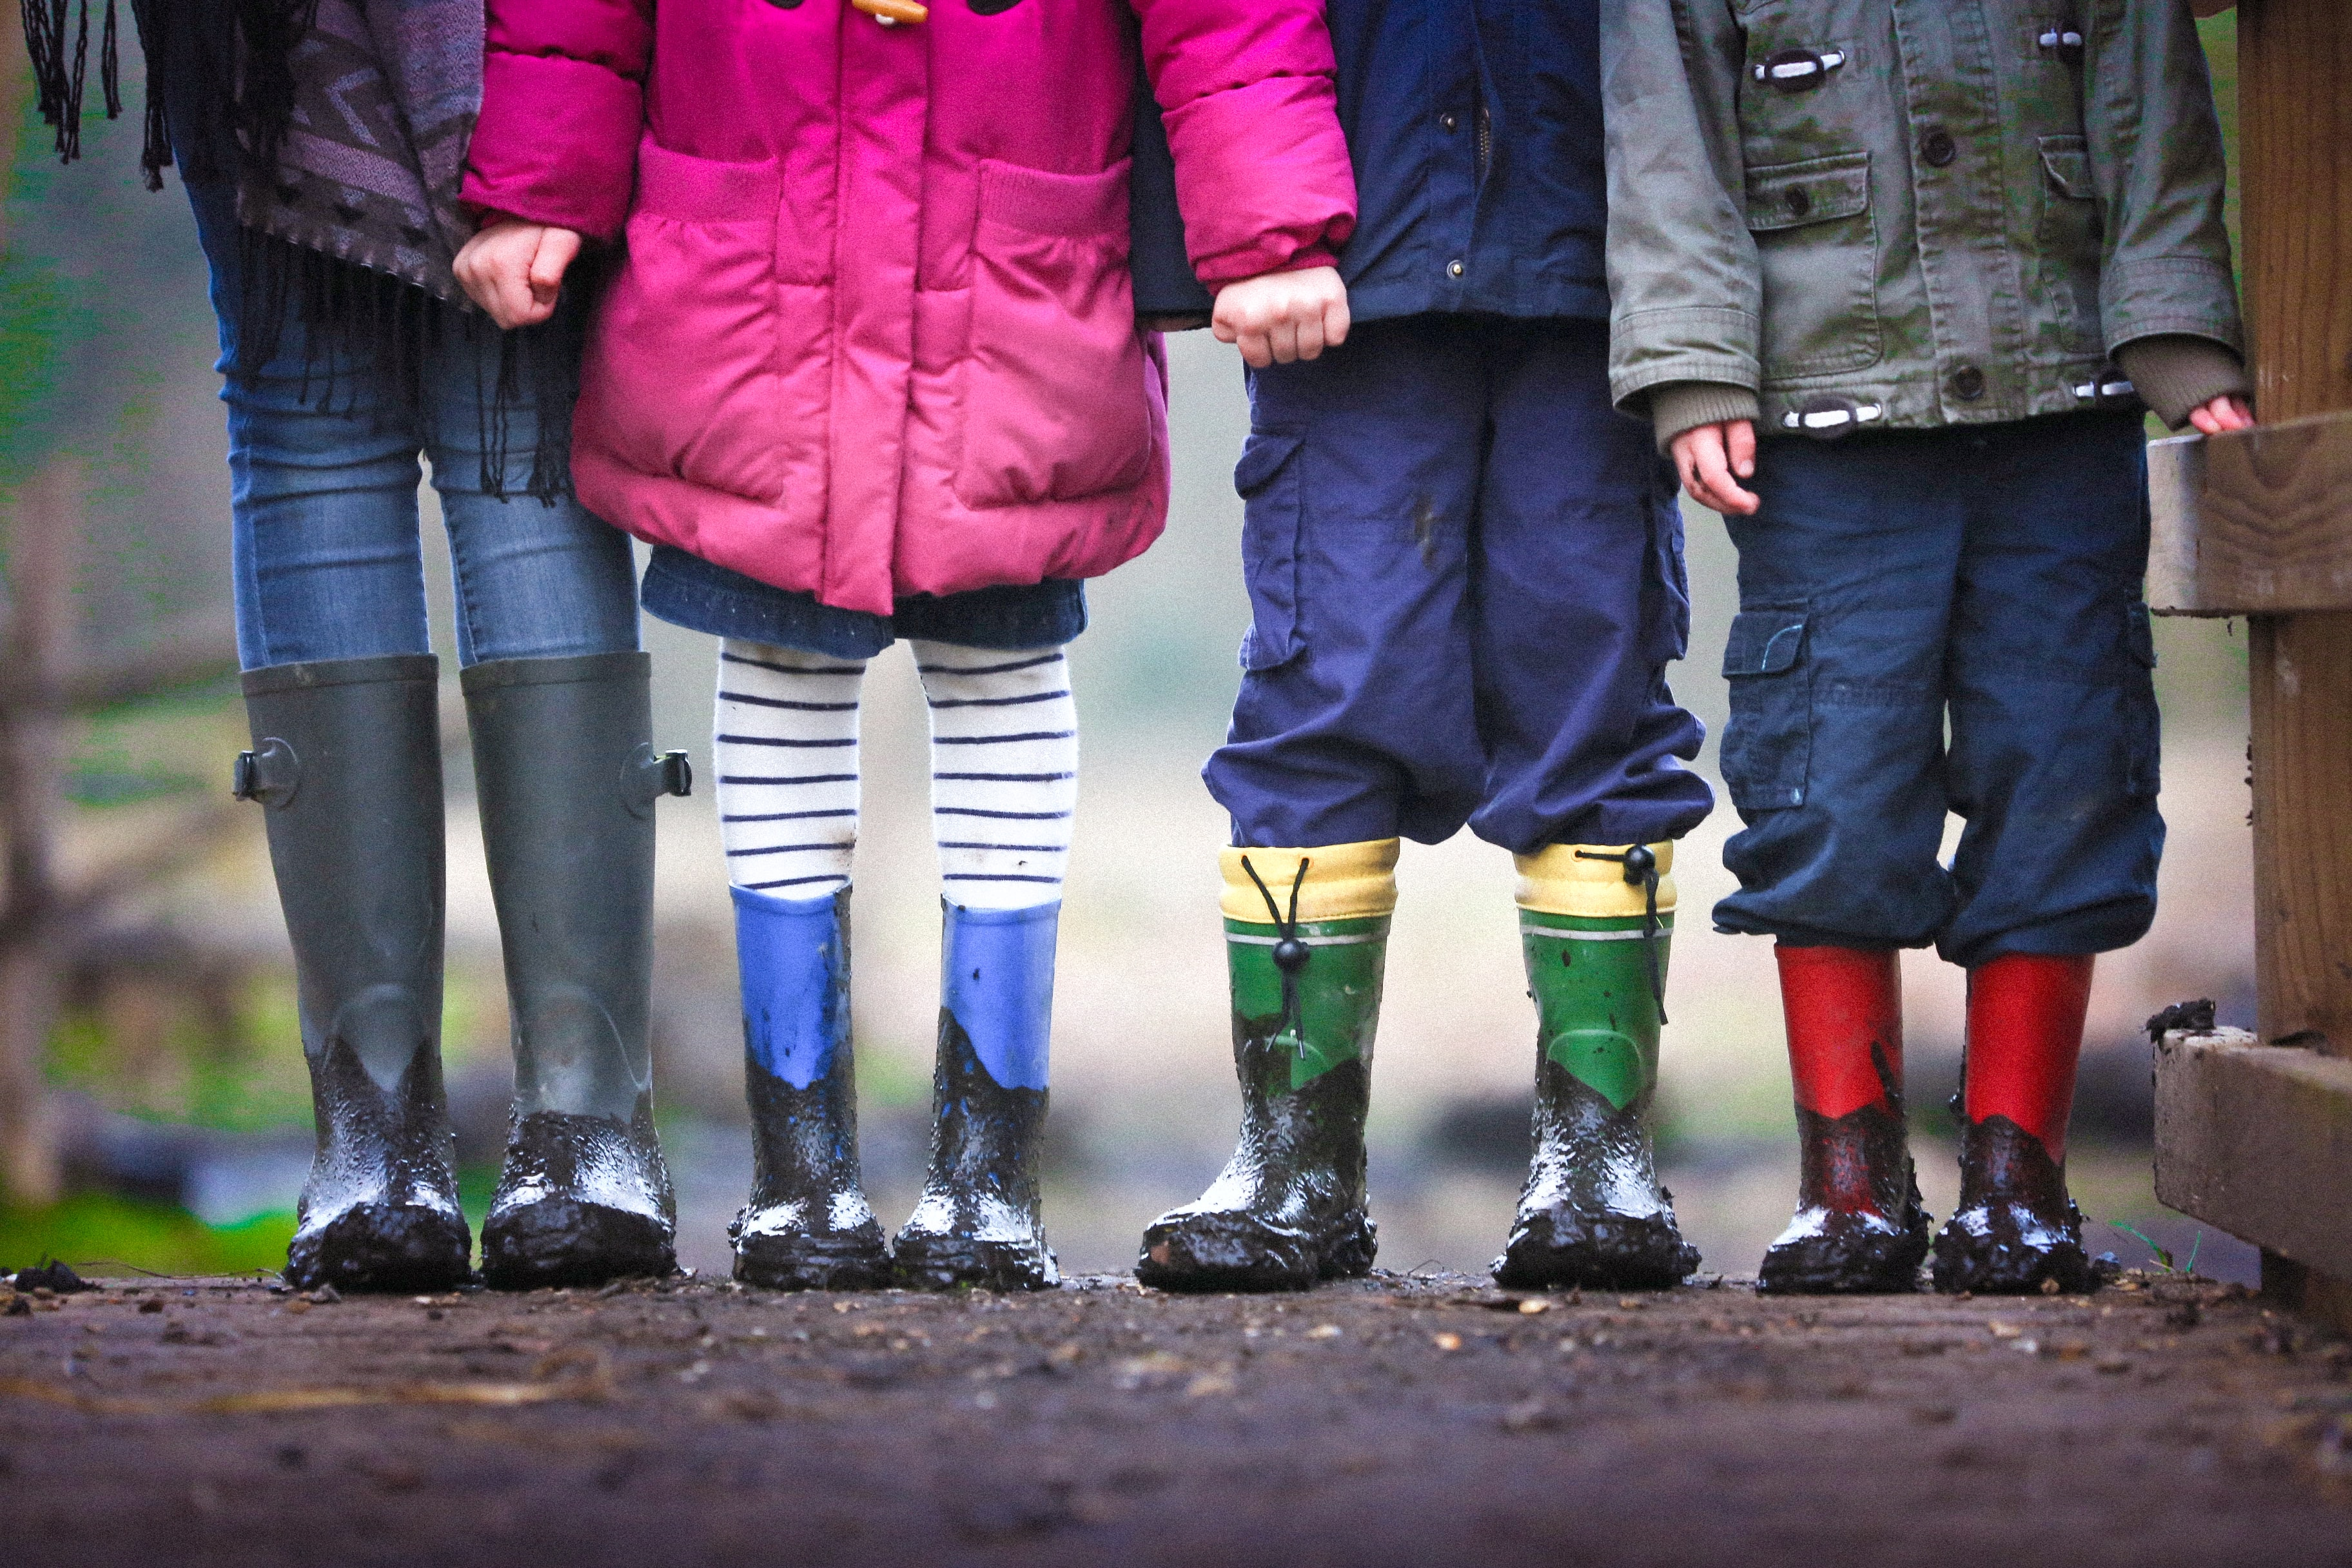 Child protection for Managers - Mandatory reporting